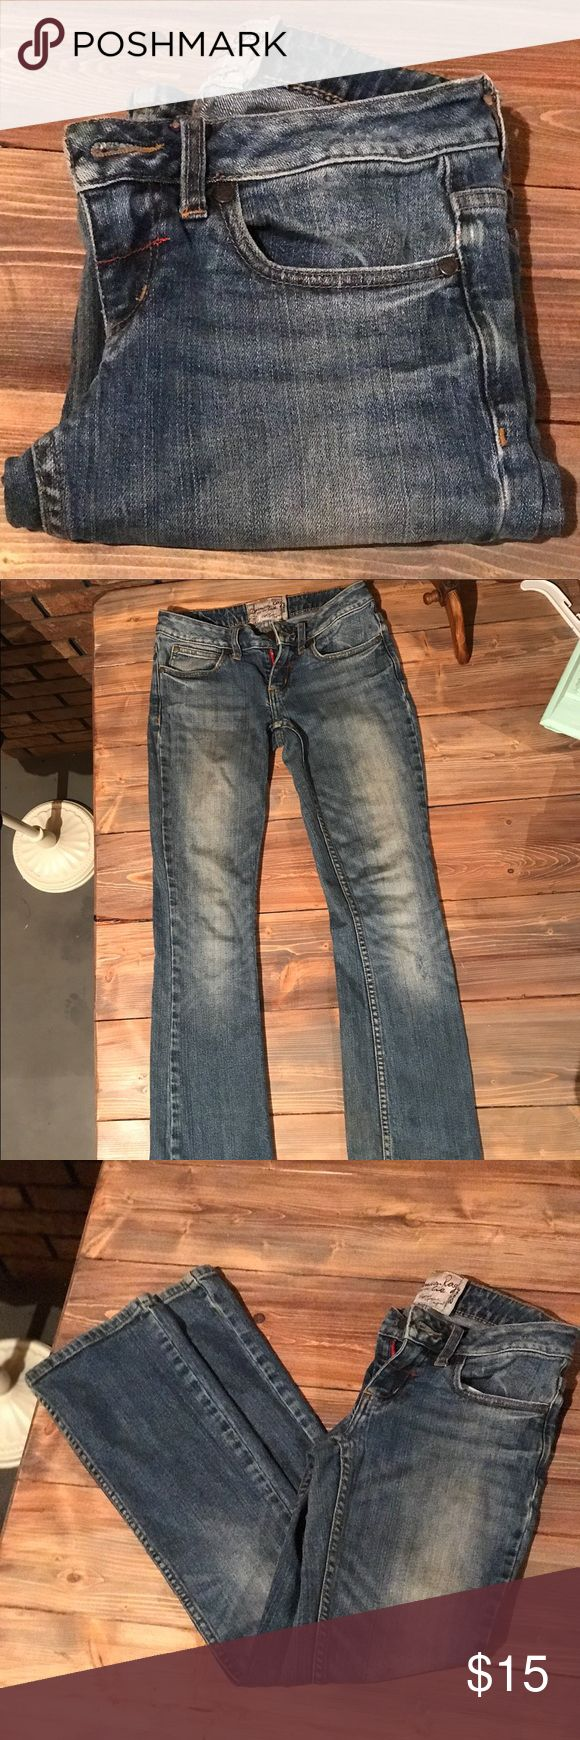 American Rag jeans size 0S boot cut dark wash Awesome pair of jeans by American Rag in excellent used condition. No rips stains etc. Size 0 short. Boot cut. American Rag Jeans Boot Cut